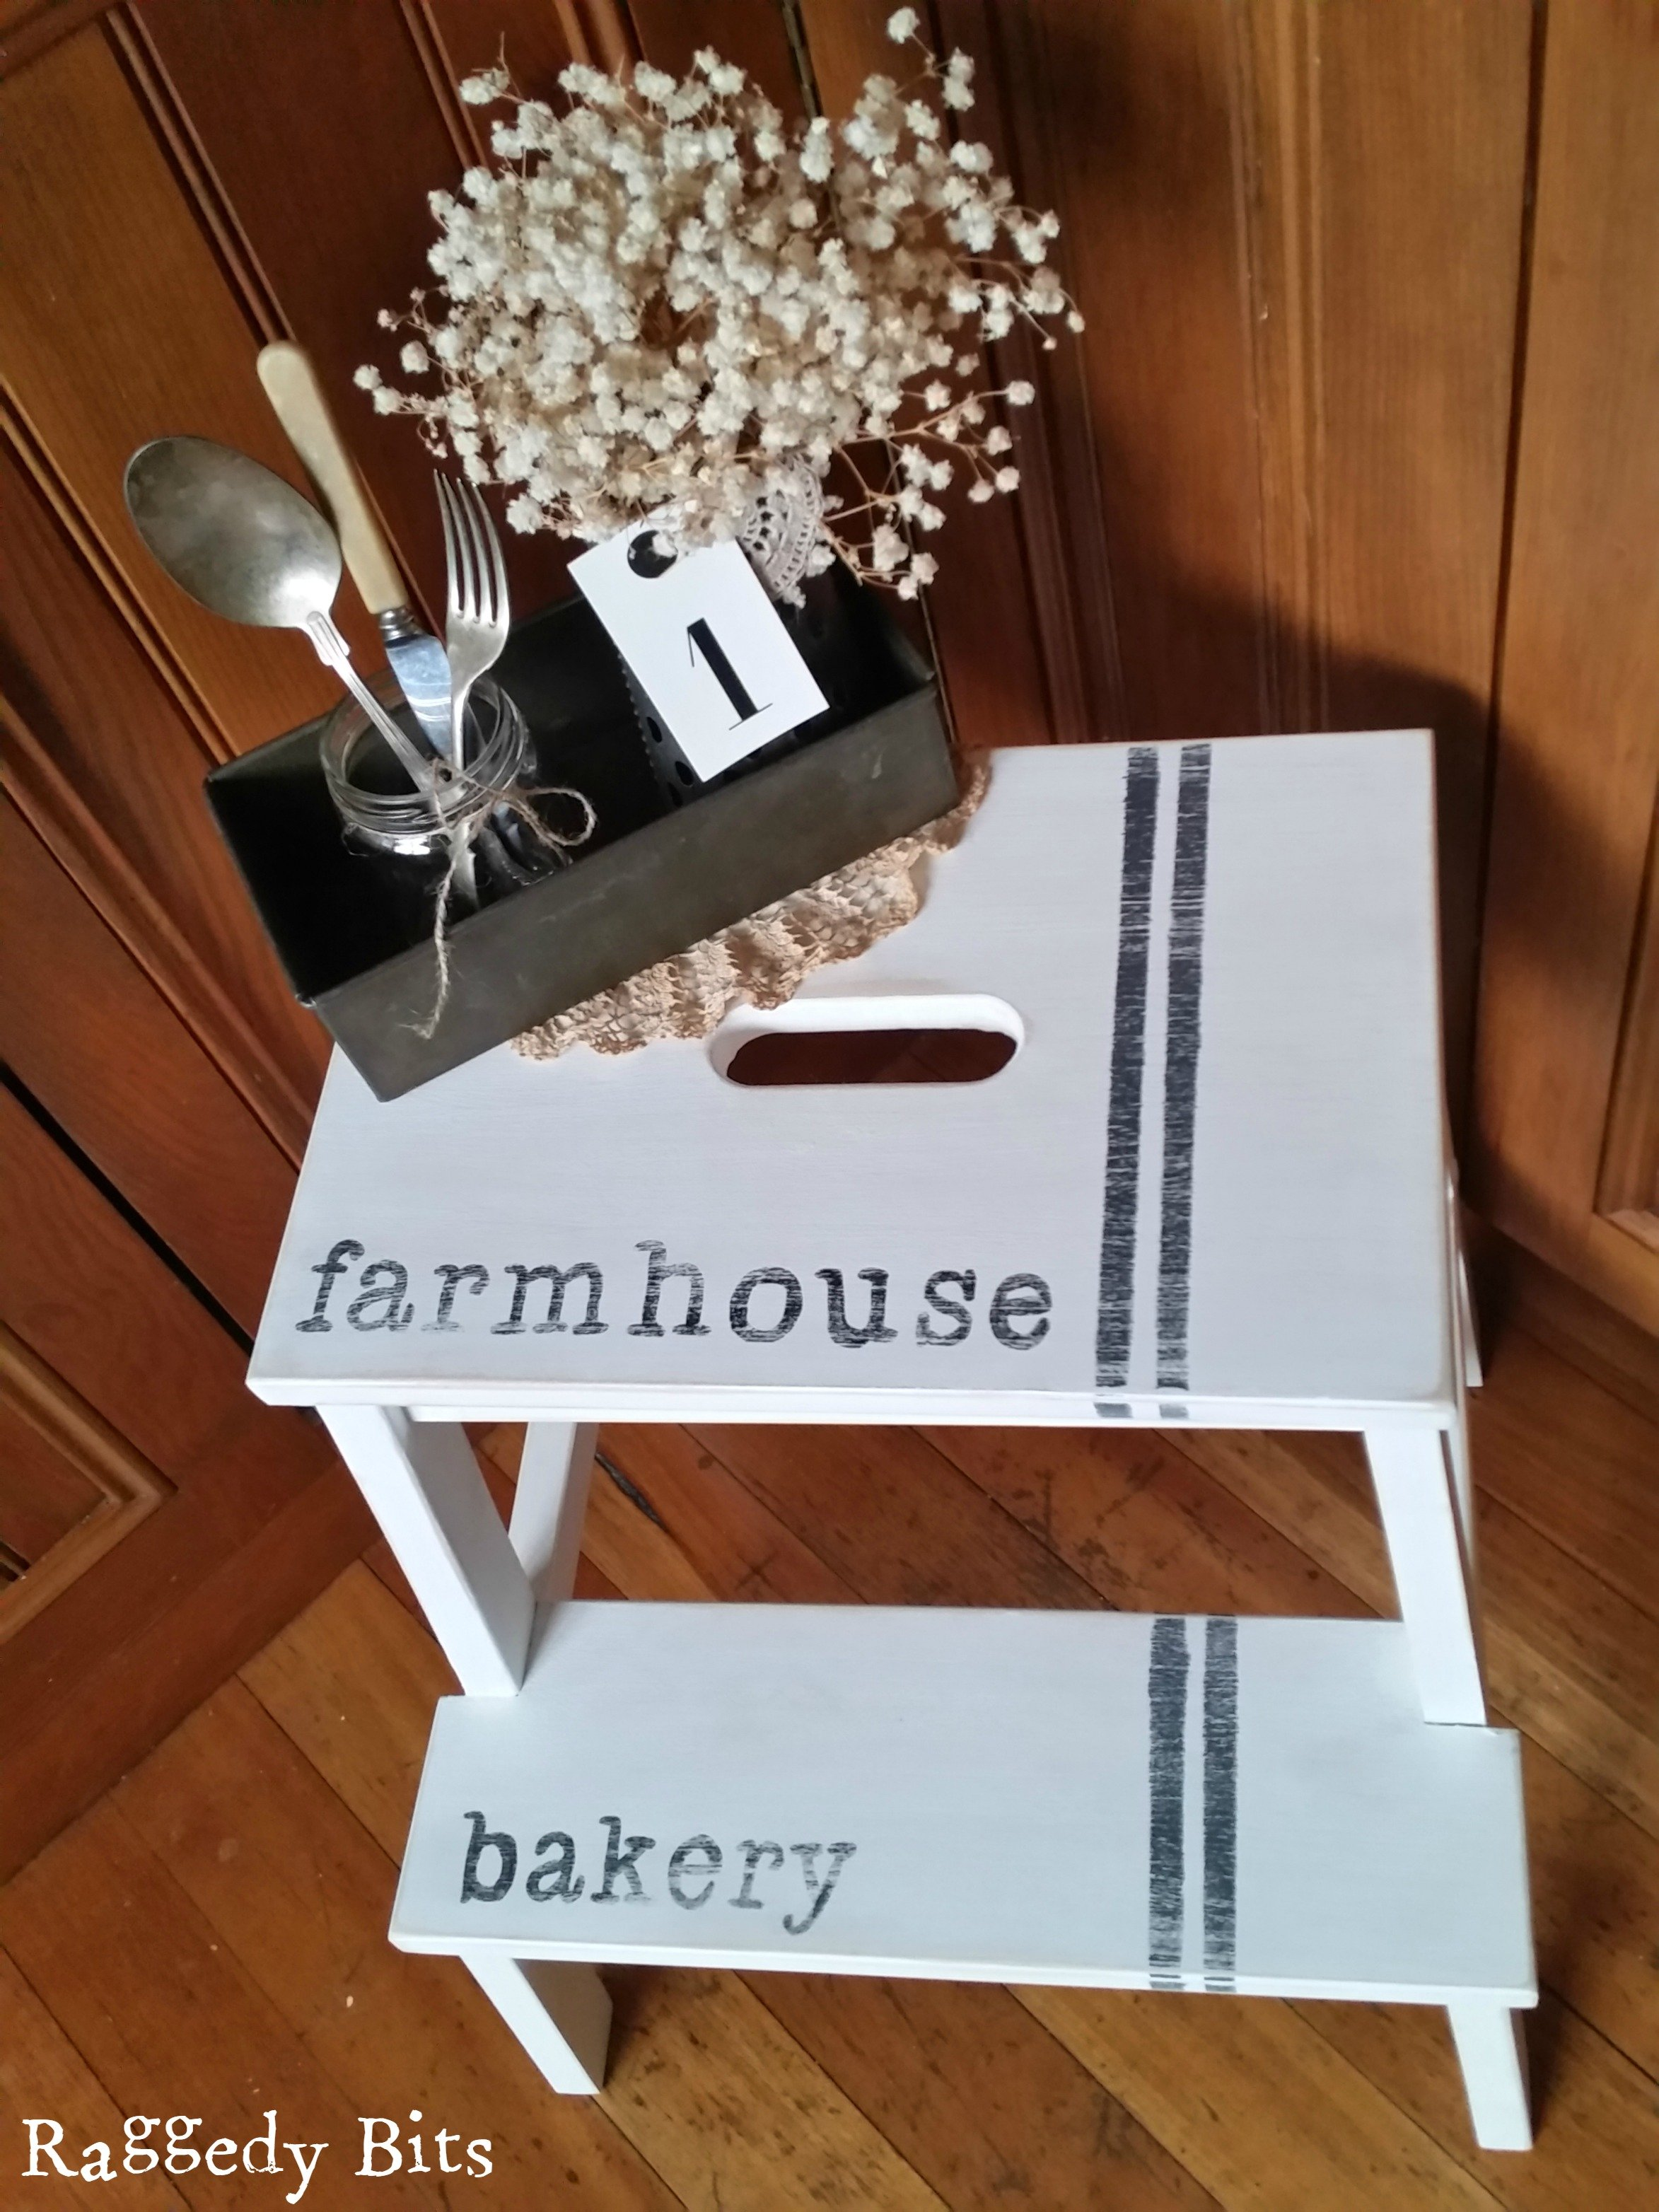 Plaque Patisserie Ikea Farmhouse Bakery Step Stool Workshop Raggedy Bits